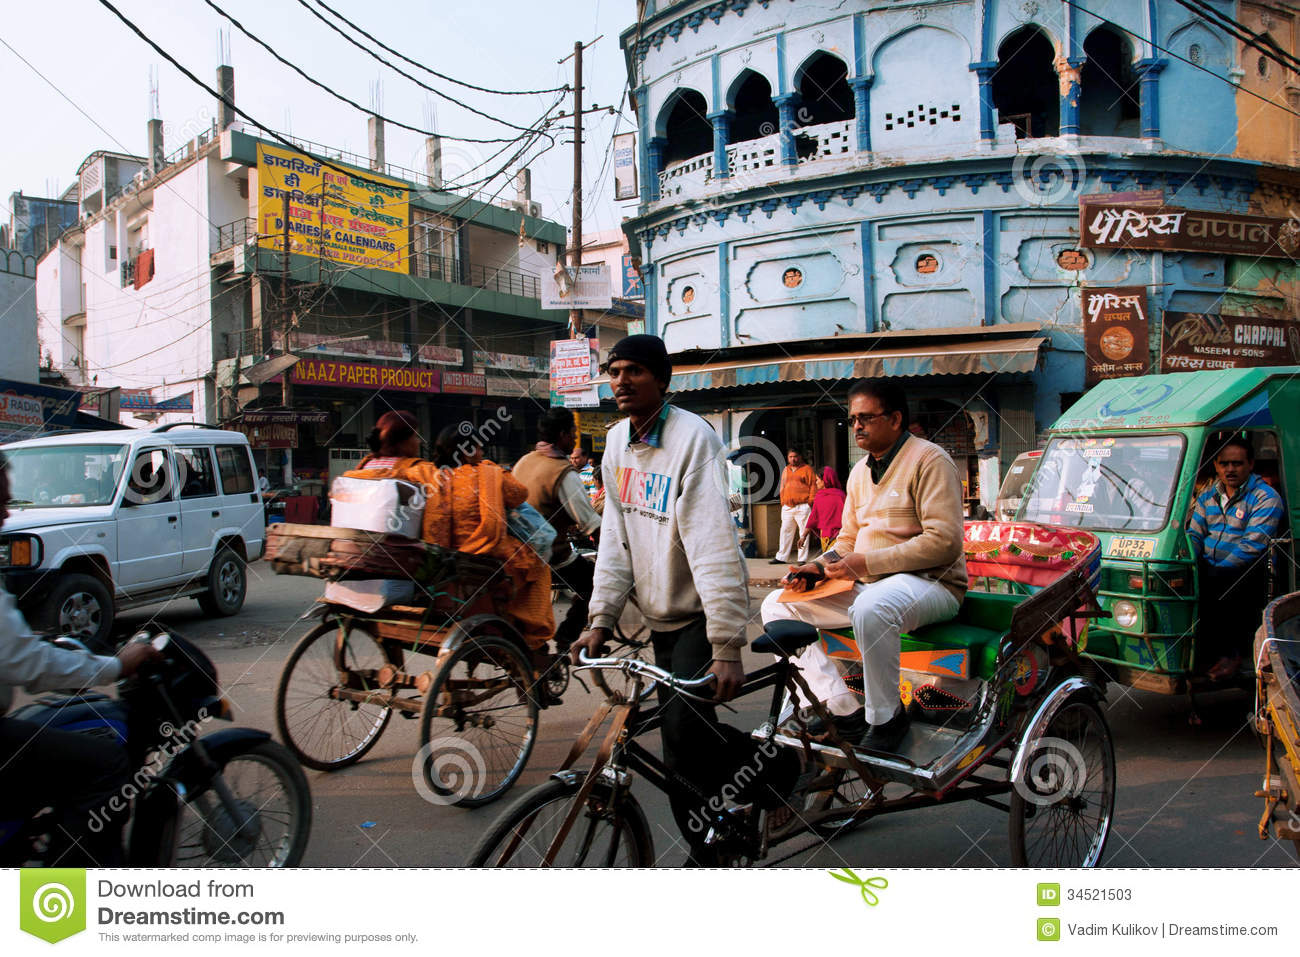 Rickshaw drives through the crowded street with many bikes in Lucknow, India